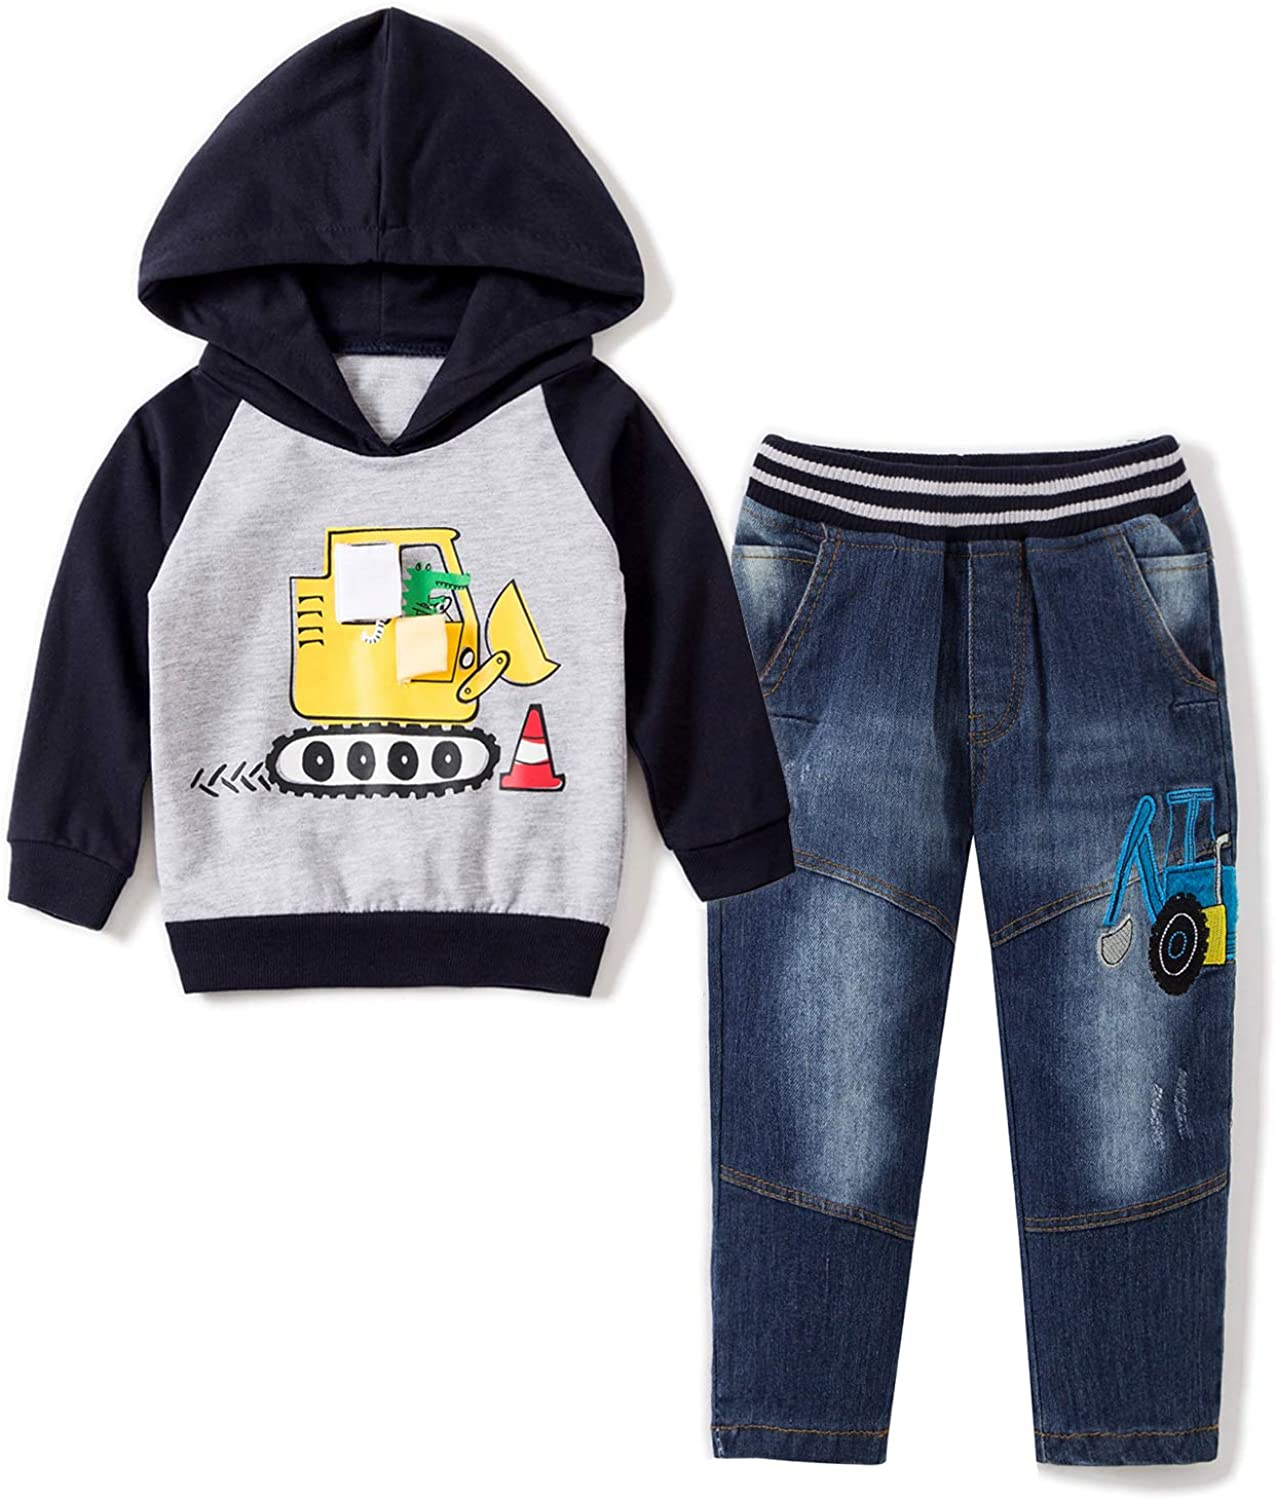 Jeans Overalls Outfit Set Pullover T-Shirt Ameyda Boys Plaid Button Up Shirt